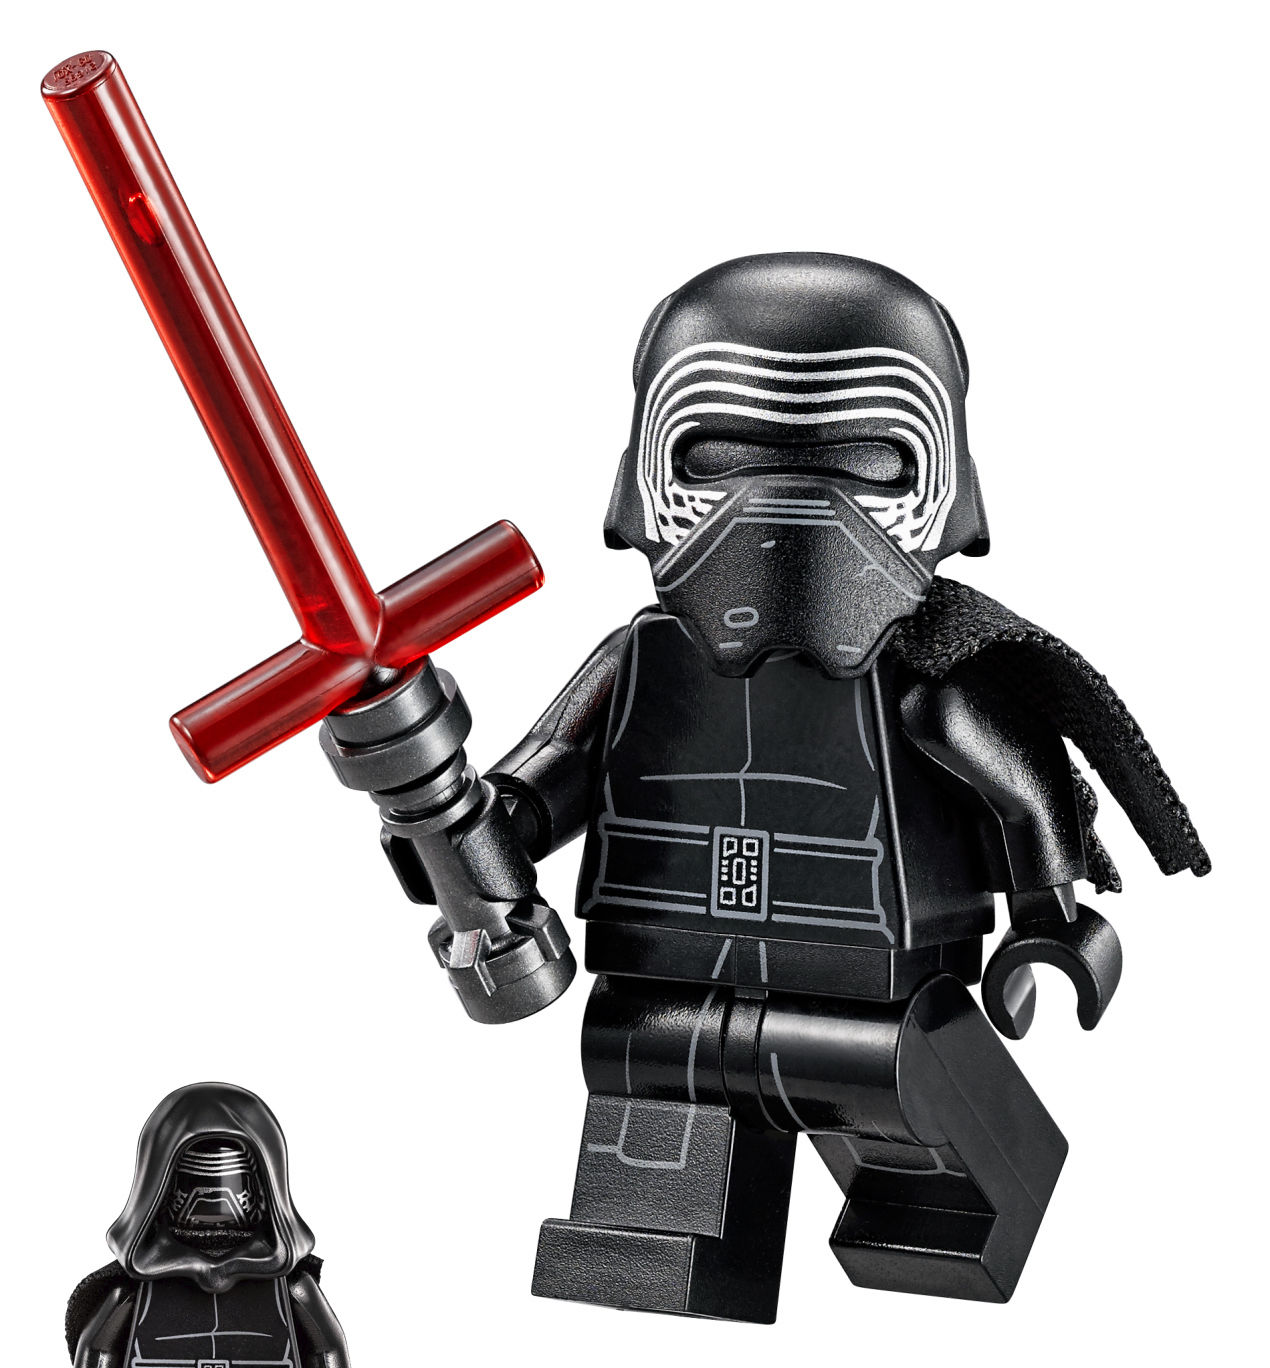 Star Wars Rise Of Skywalker Kylo Ren minifigure compatible with LEGO USA Seller